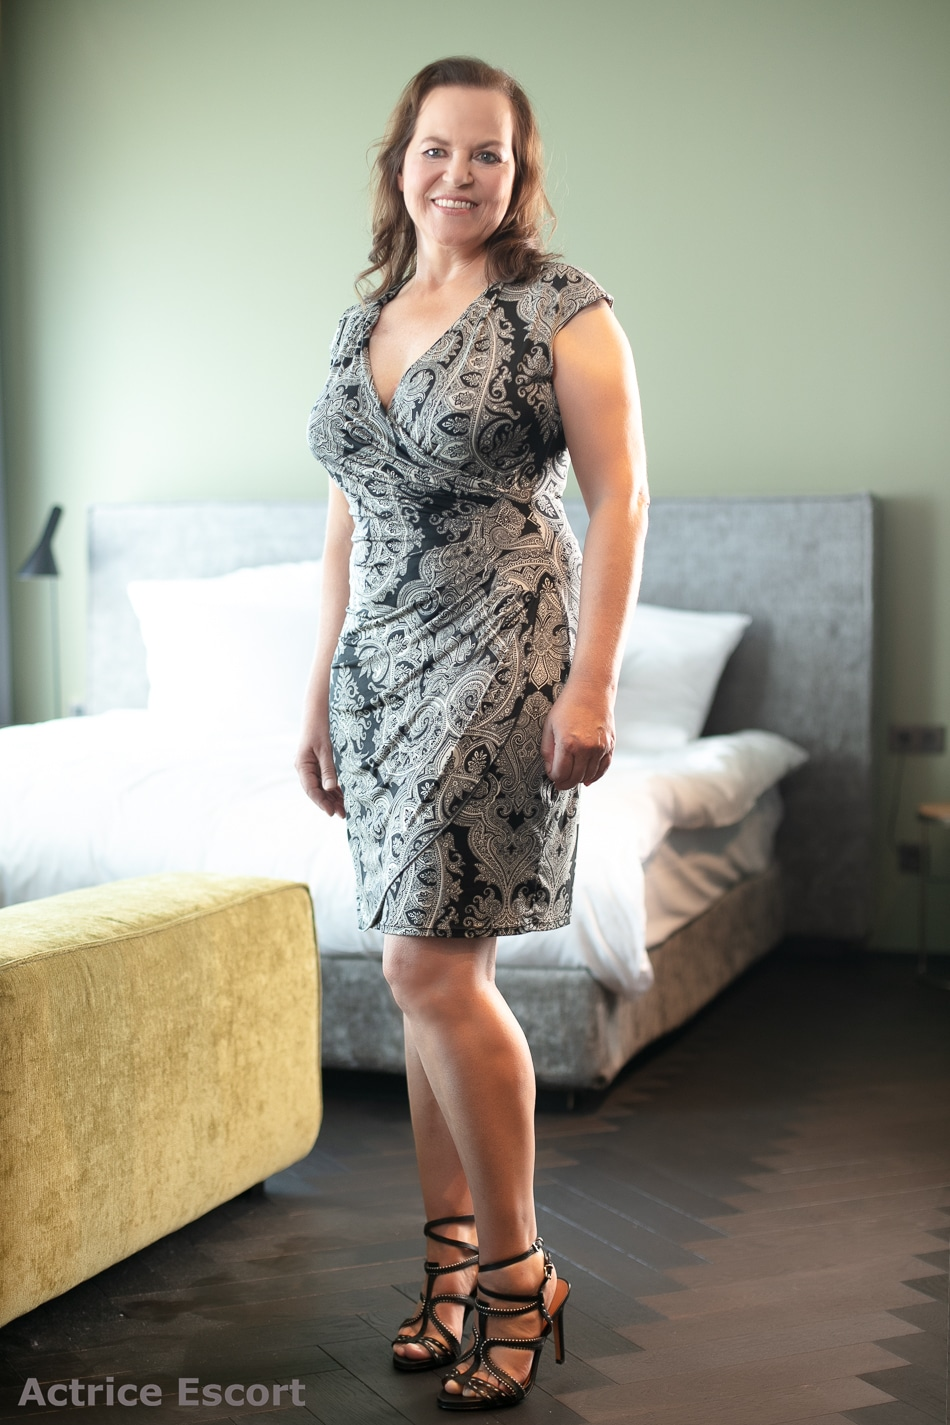 Bettina Escortservice Duesseldorf(11)